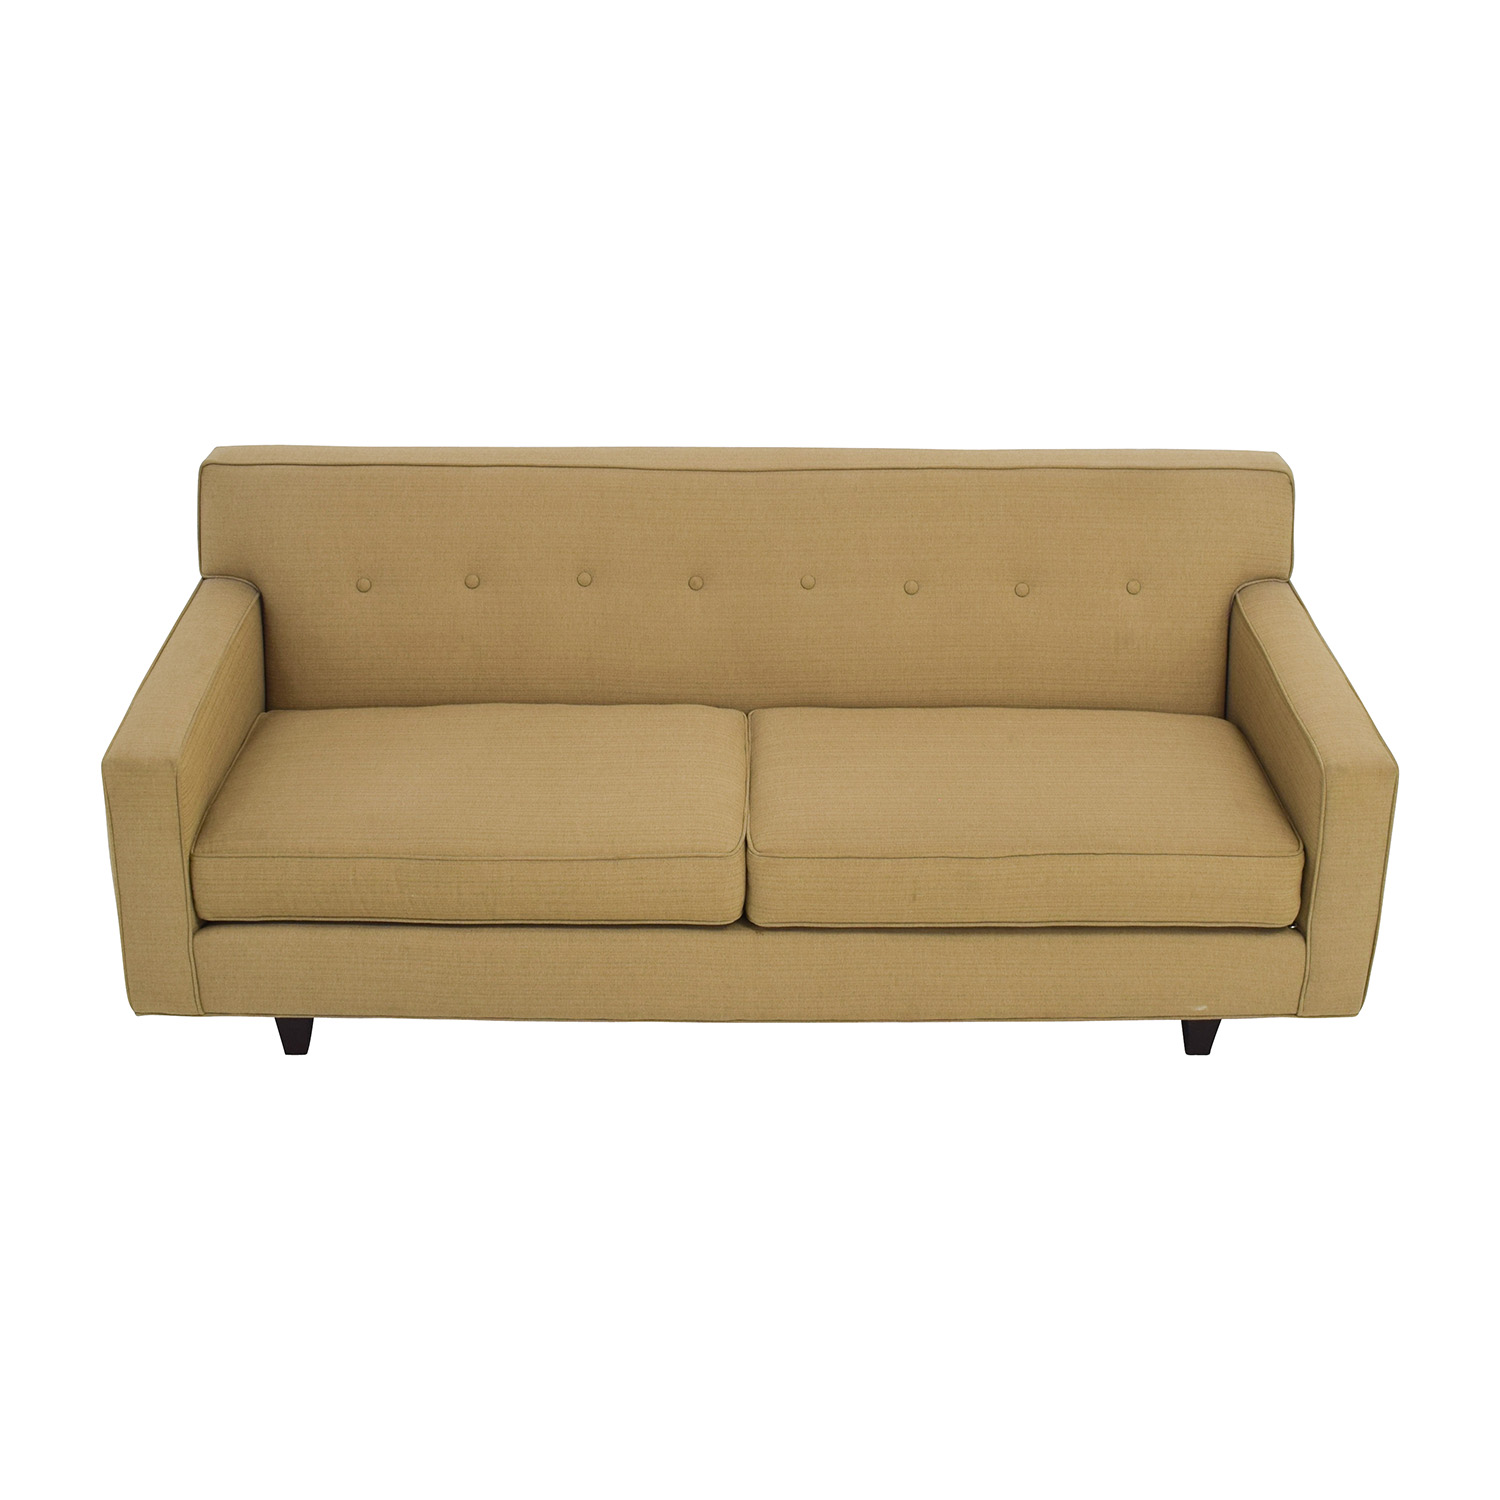 Rowe Furniture Rowe Furniture Contemporary Dorset Oatmeal Sofa nj